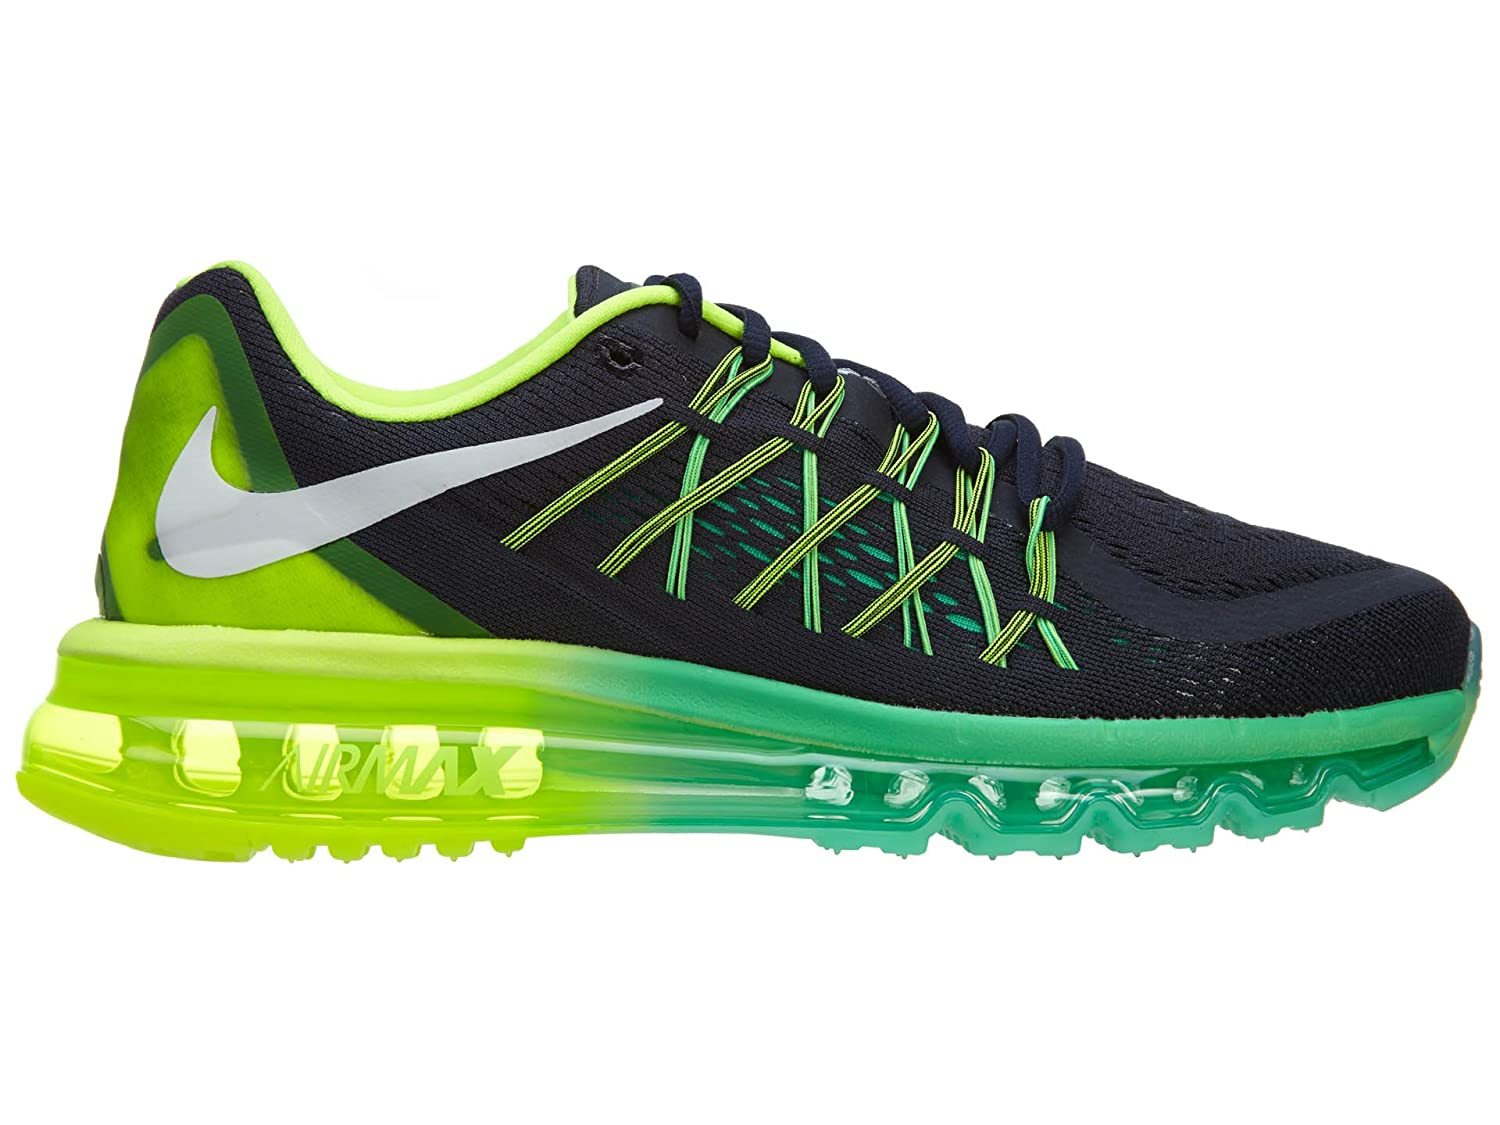 Nike Women s Wmns Air Max 2015 DARK OBSIDIAN WHITE-VOLT-MENTA DARK OBSIDIAN/ WHITE-VOLT-MENTA 7.5 B(M) US: Amazon.in: Sports, Fitness & Outdoors